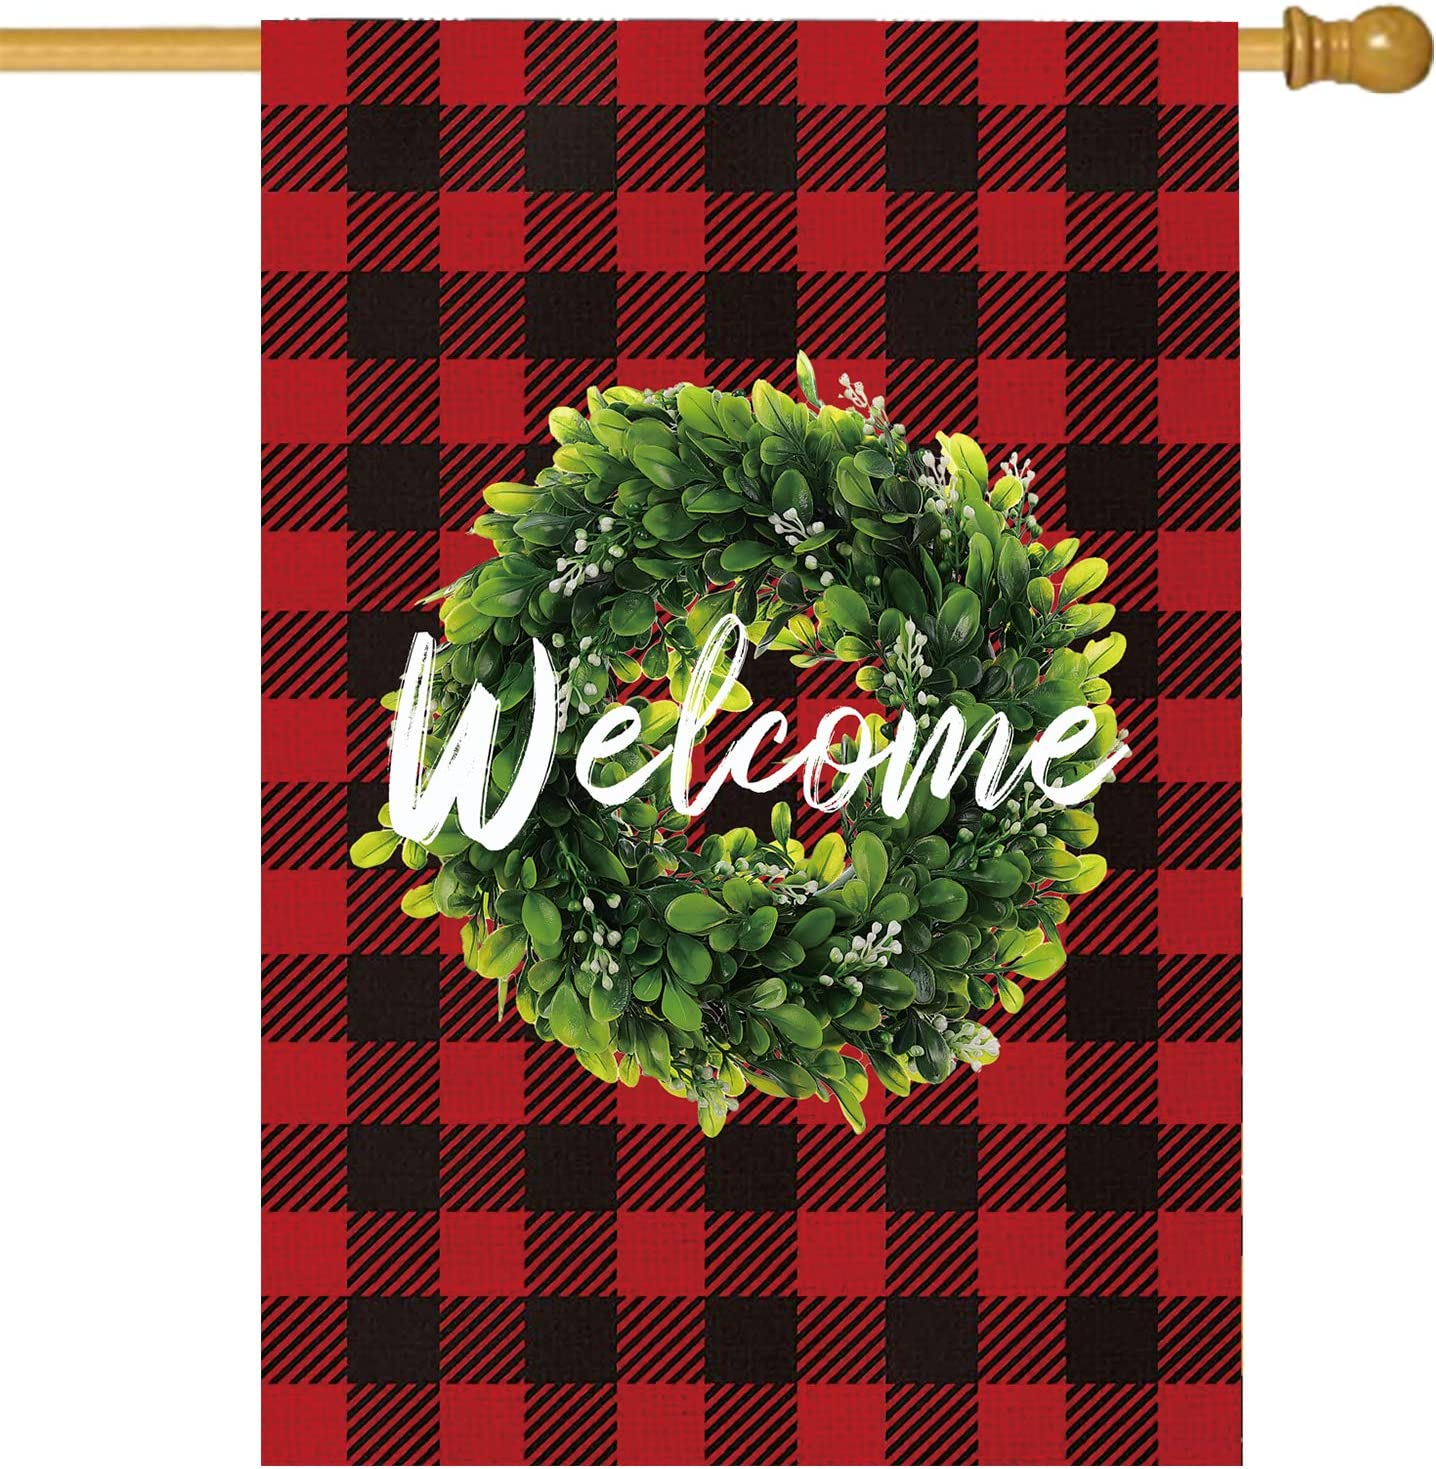 SANDEGOO Wreath Welcome Flag Double Side 28×45, Seasonal Buffalo Check Plaid Burlap Vertical Garden Flag Fade and Weather Resistant Outdoor Decorations for Home Yard Garden (Red)